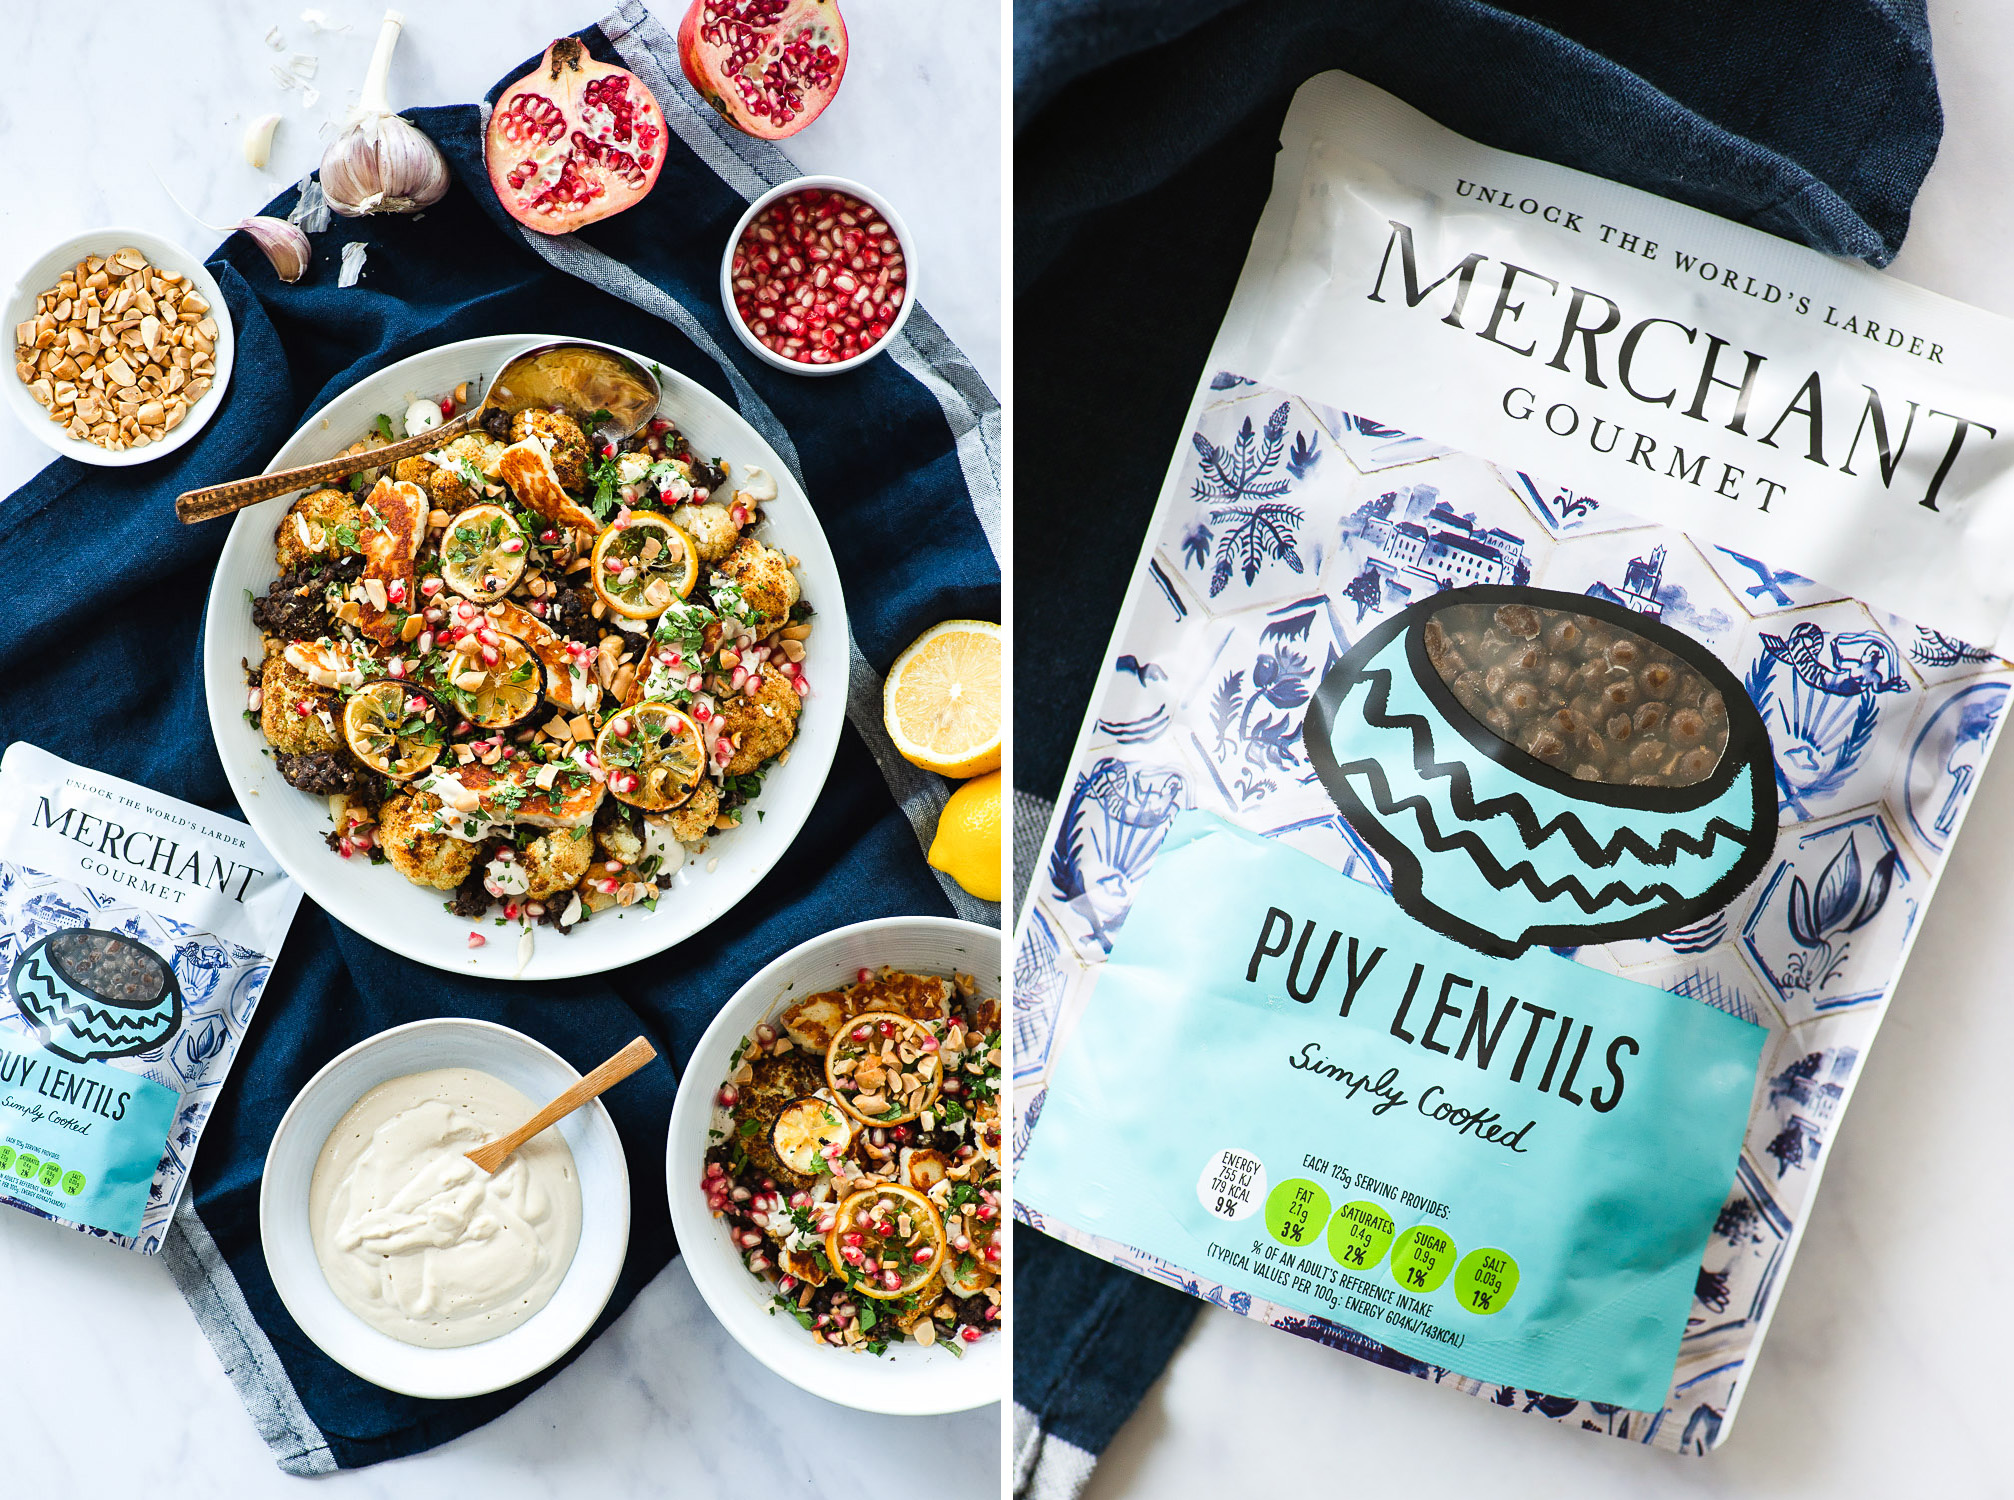 Roasted Cauliflower Salad With Merchant Gourmet Puy Lentils and Lemon Tahini Dressing